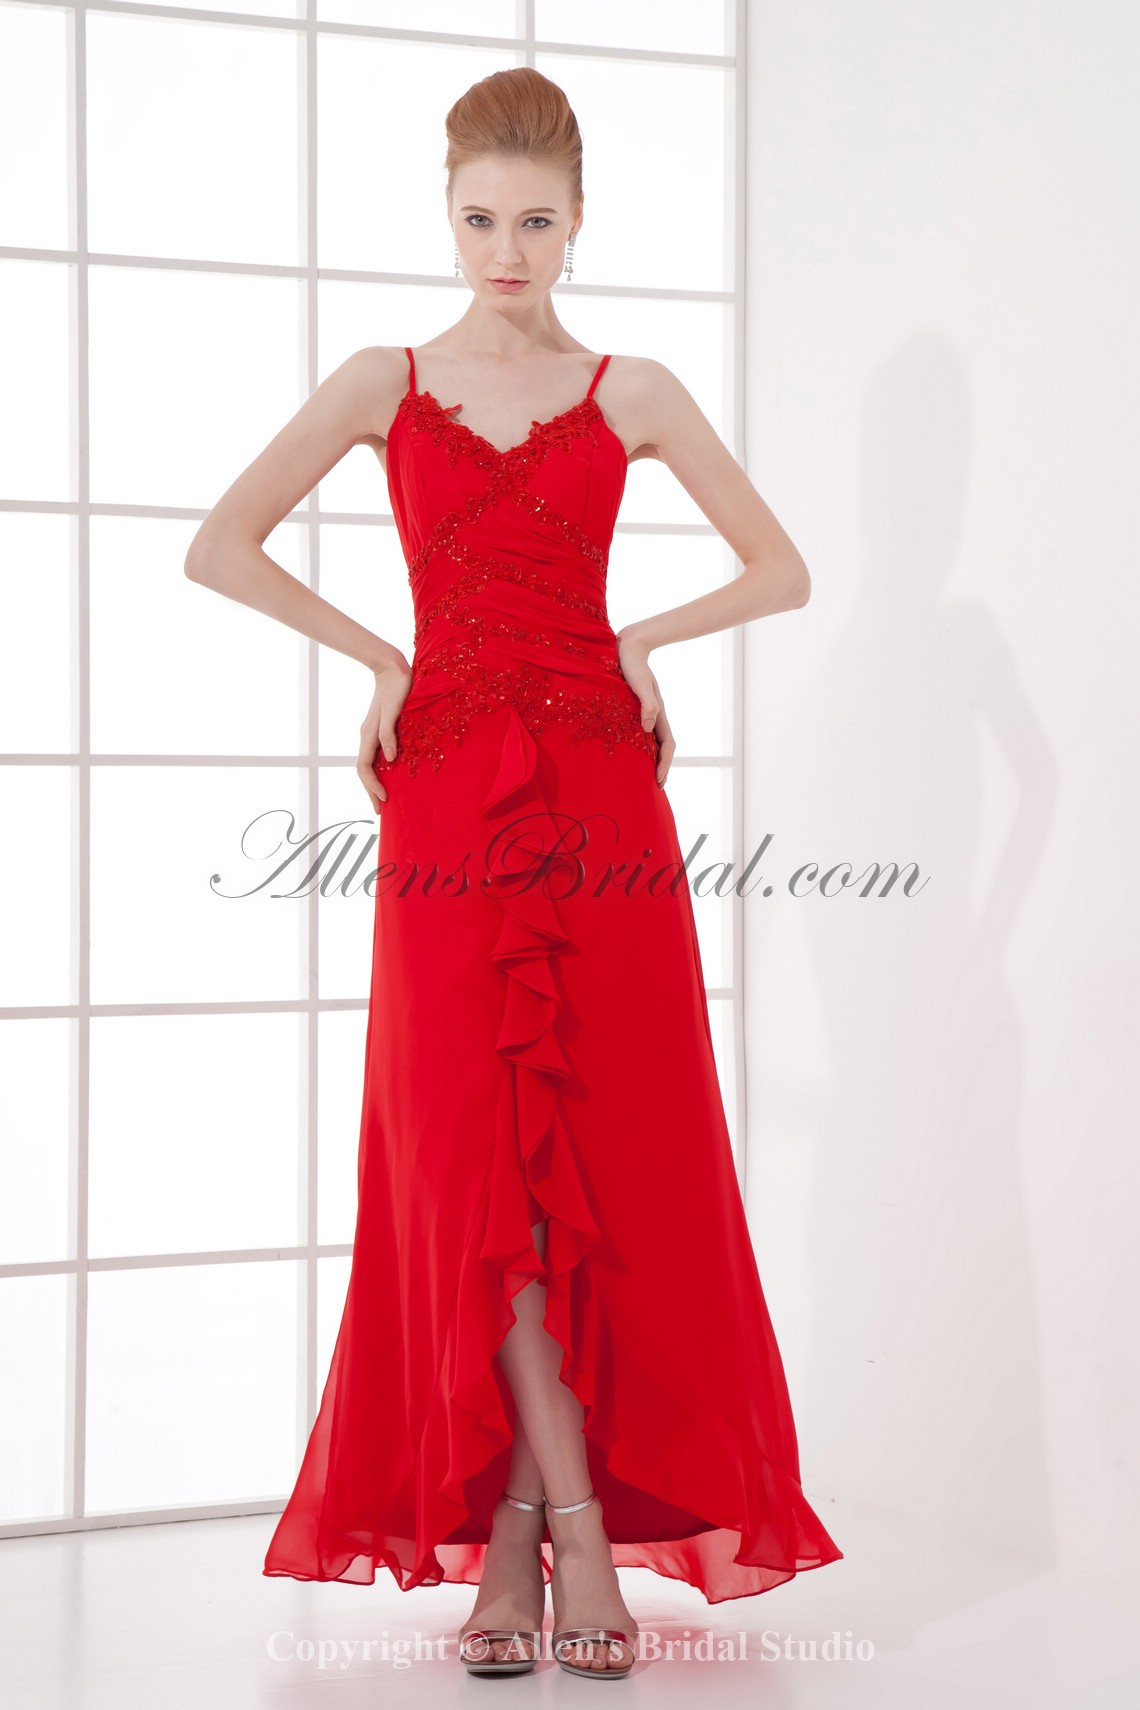 /101-802/chiffon-spaghetti-neckline-a-line-asymmetrical-embroidered-prom-dress.jpg